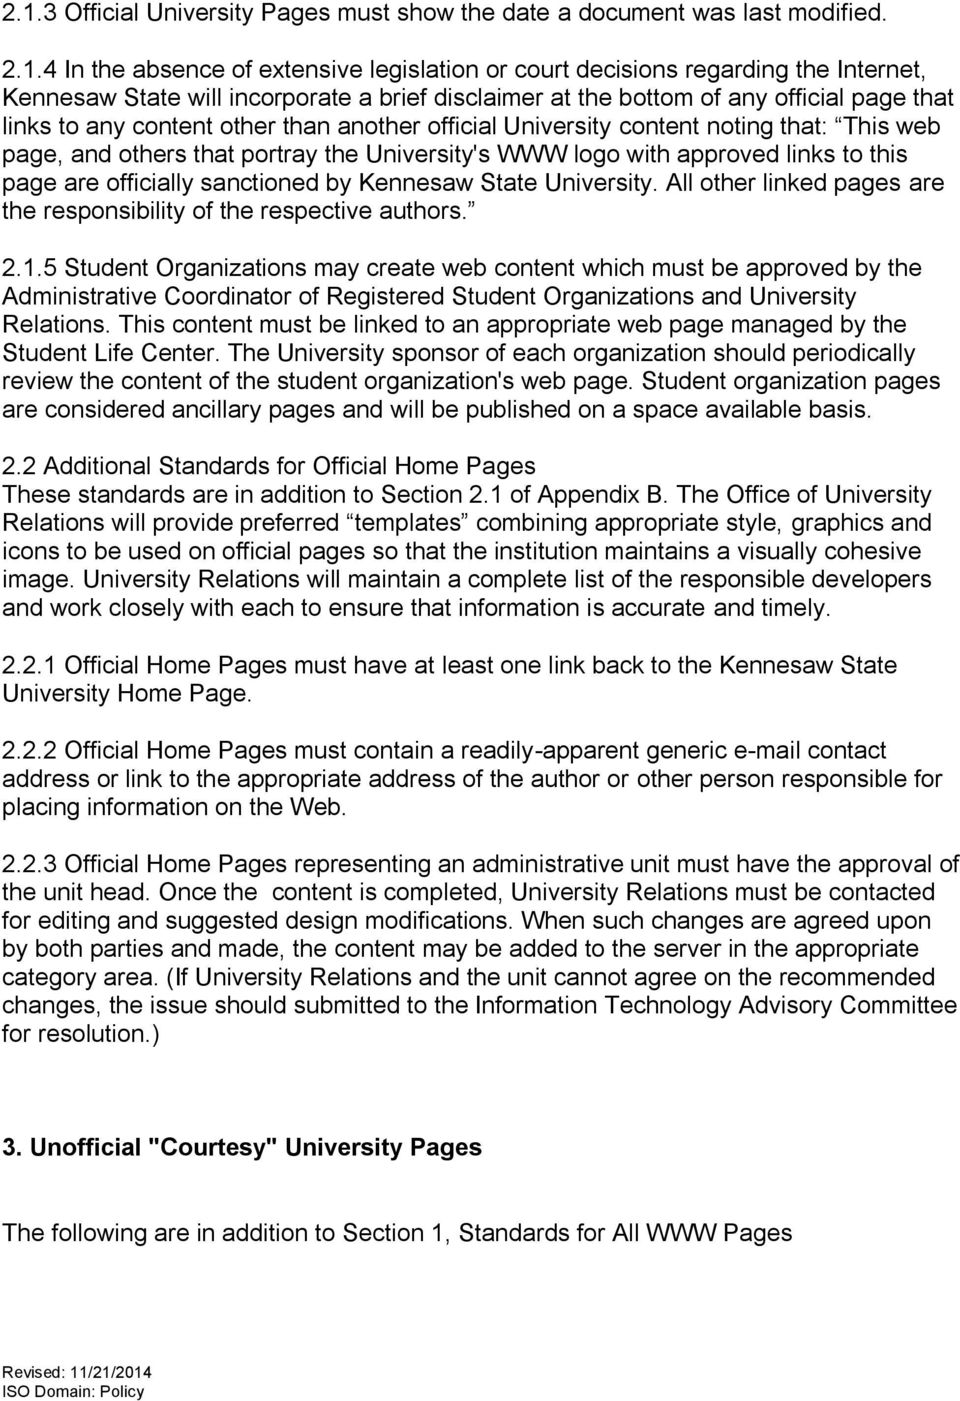 University's WWW logo with approved links to this page are officially sanctioned by Kennesaw State University. All other linked pages are the responsibility of the respective authors. 2.1.